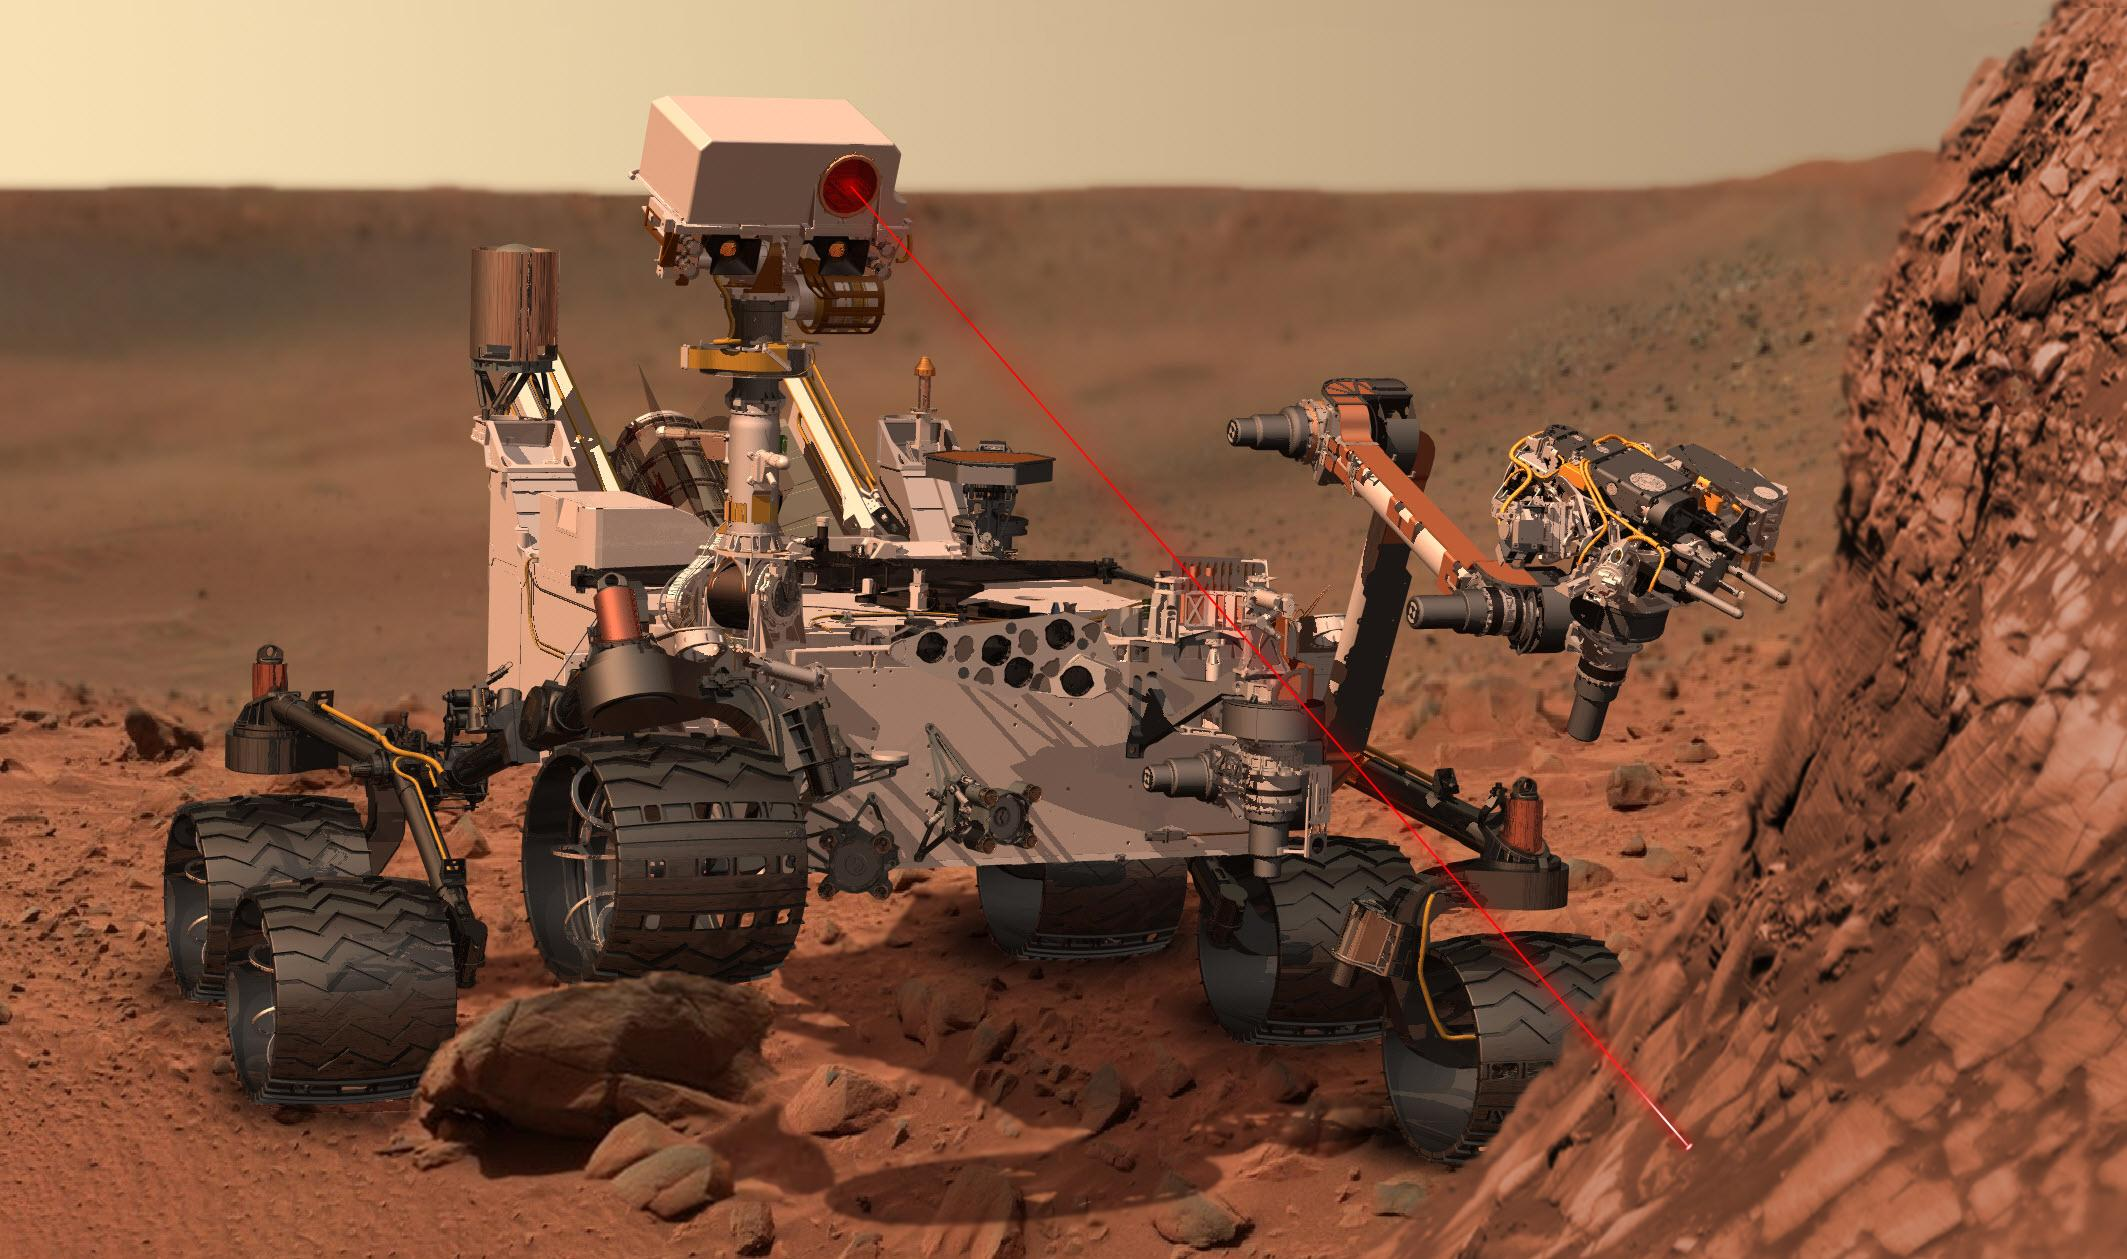 pulsed laser (curiosity rover)